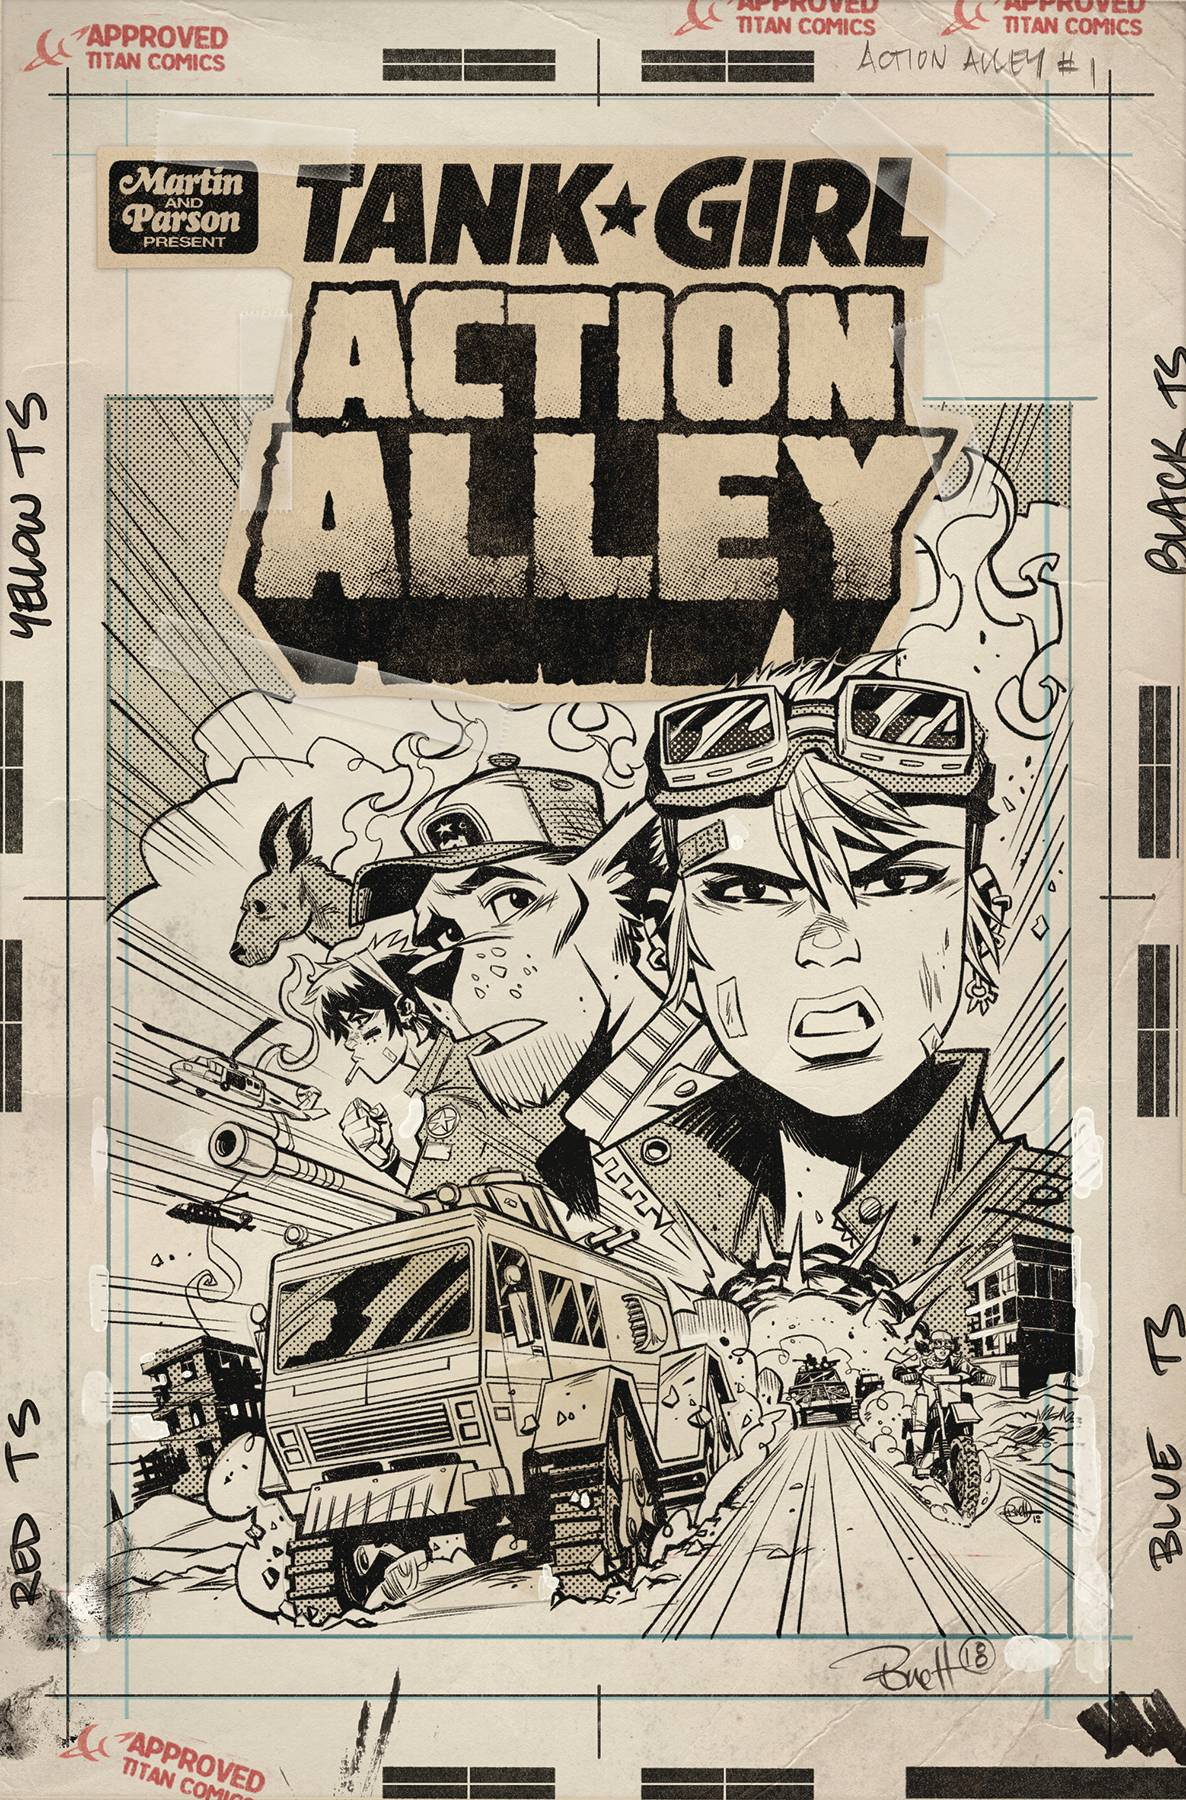 TANK GIRL ACTION ALLEY 1 CVR D PARSON ARTIST ED.jpg